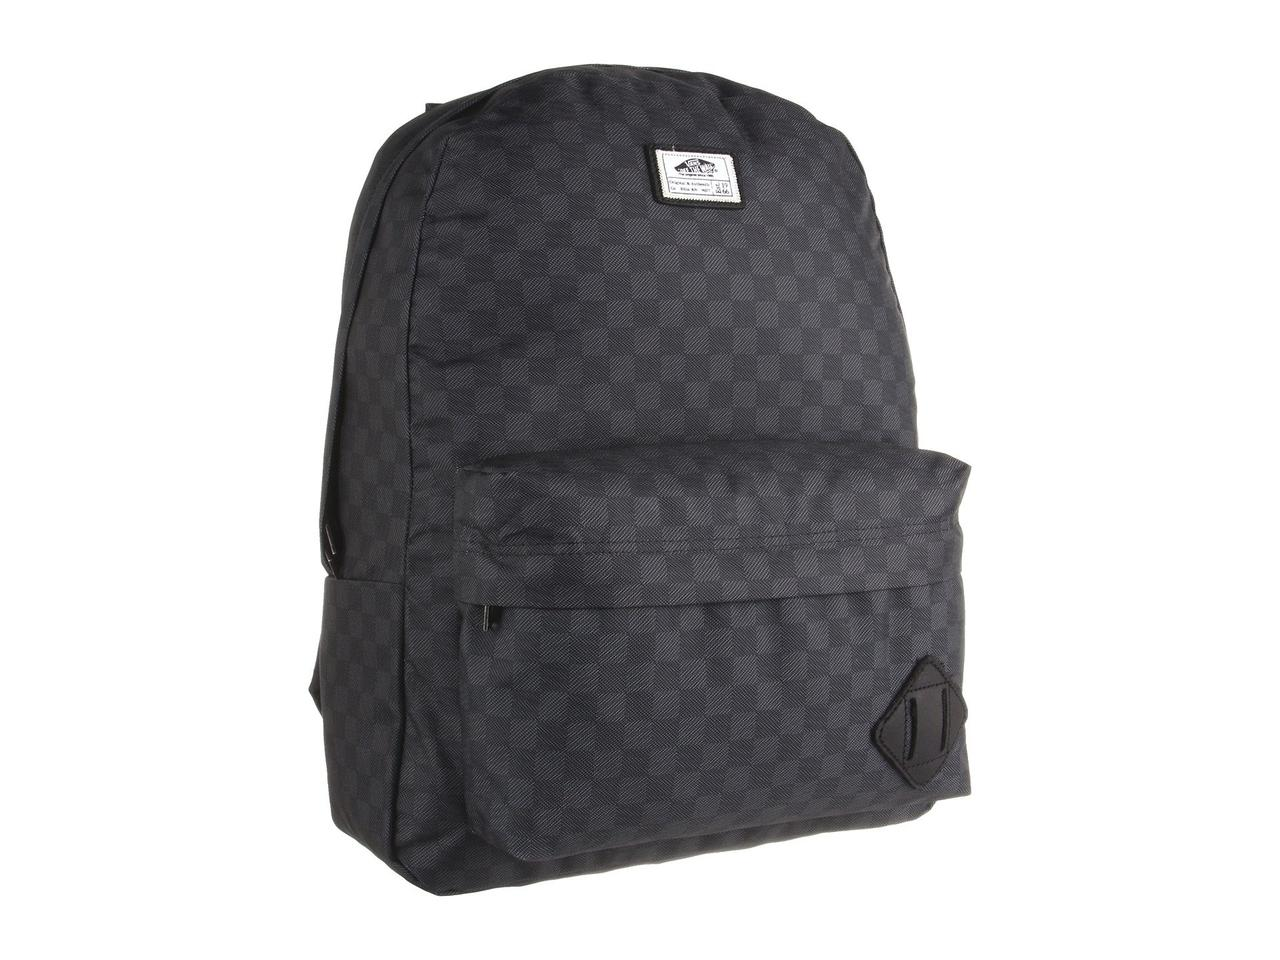 9dd57e0a8cd9 Рюкзак (Оригинал) Vans Old Skool II Backpack Black/Charcoal: продажа ...